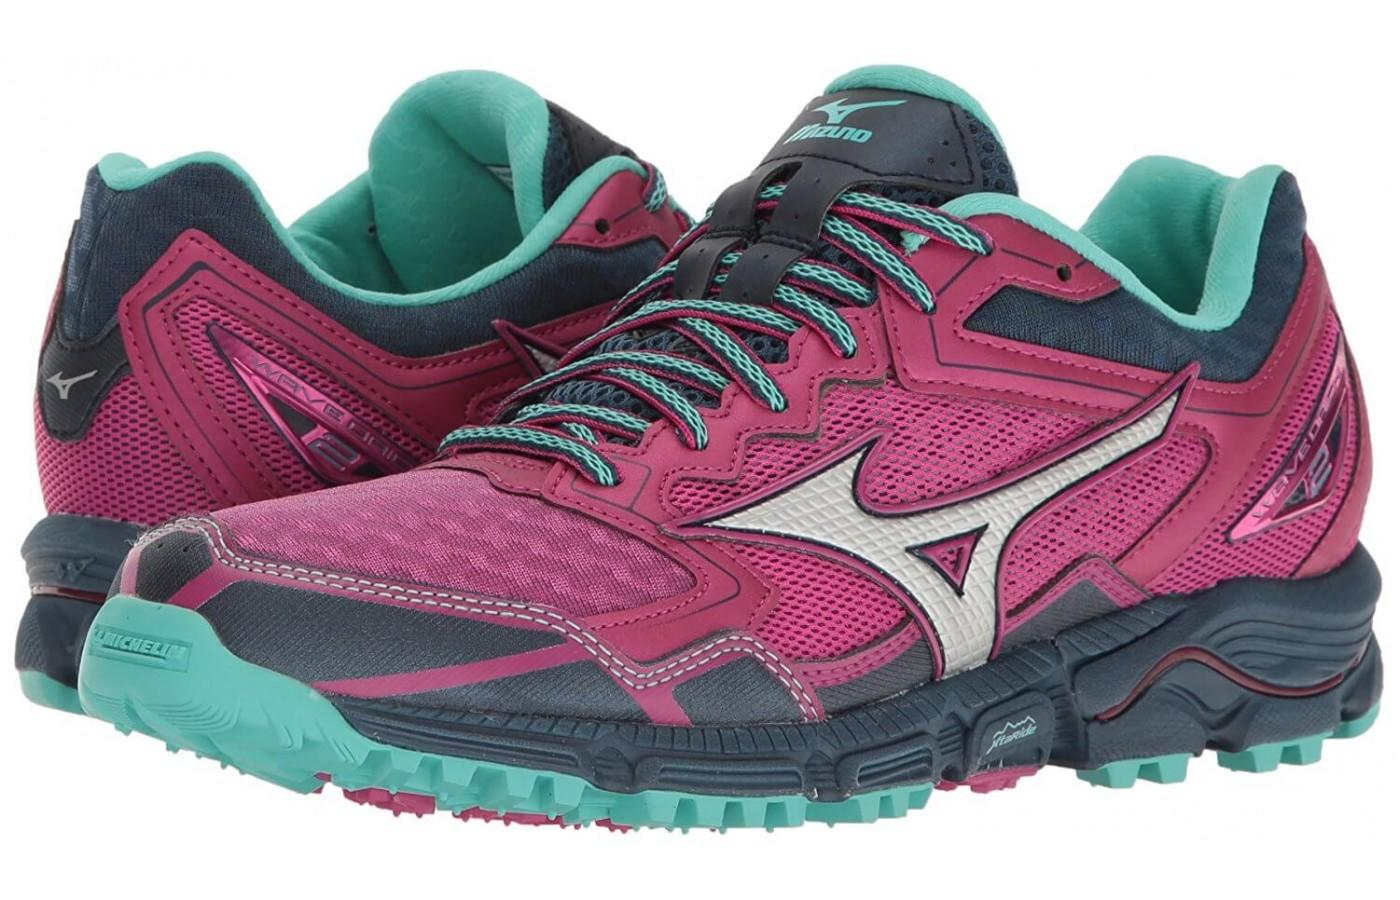 Pair of Mizuno Wave Daichi 2 women's shoes